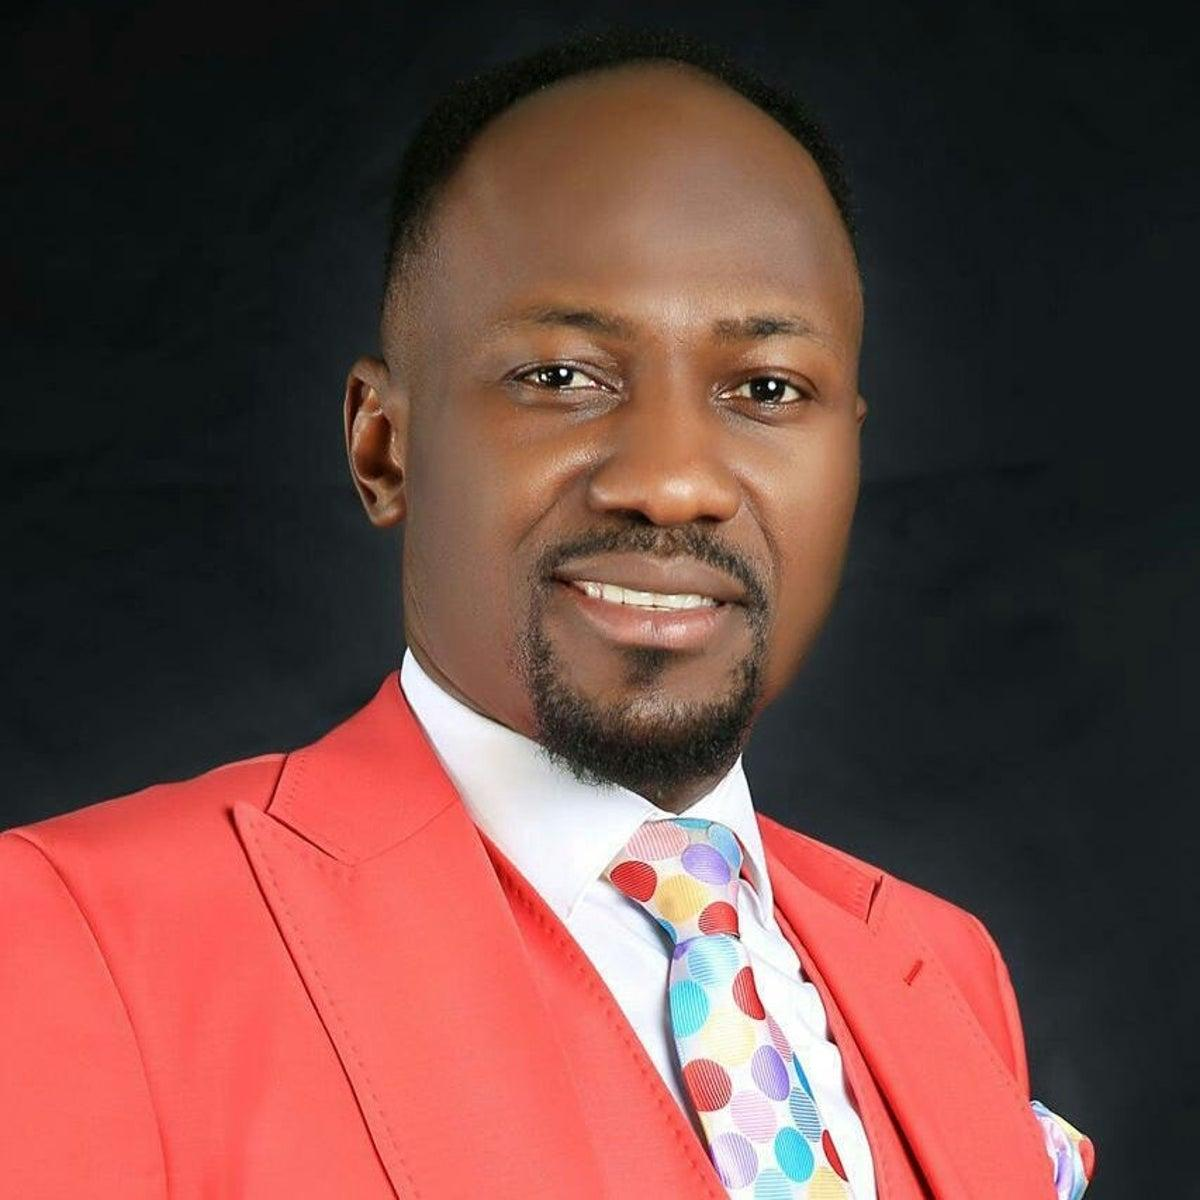 Apostle Johnson Suleman Blows Hot On Men Who Beat Their Wives (Video)